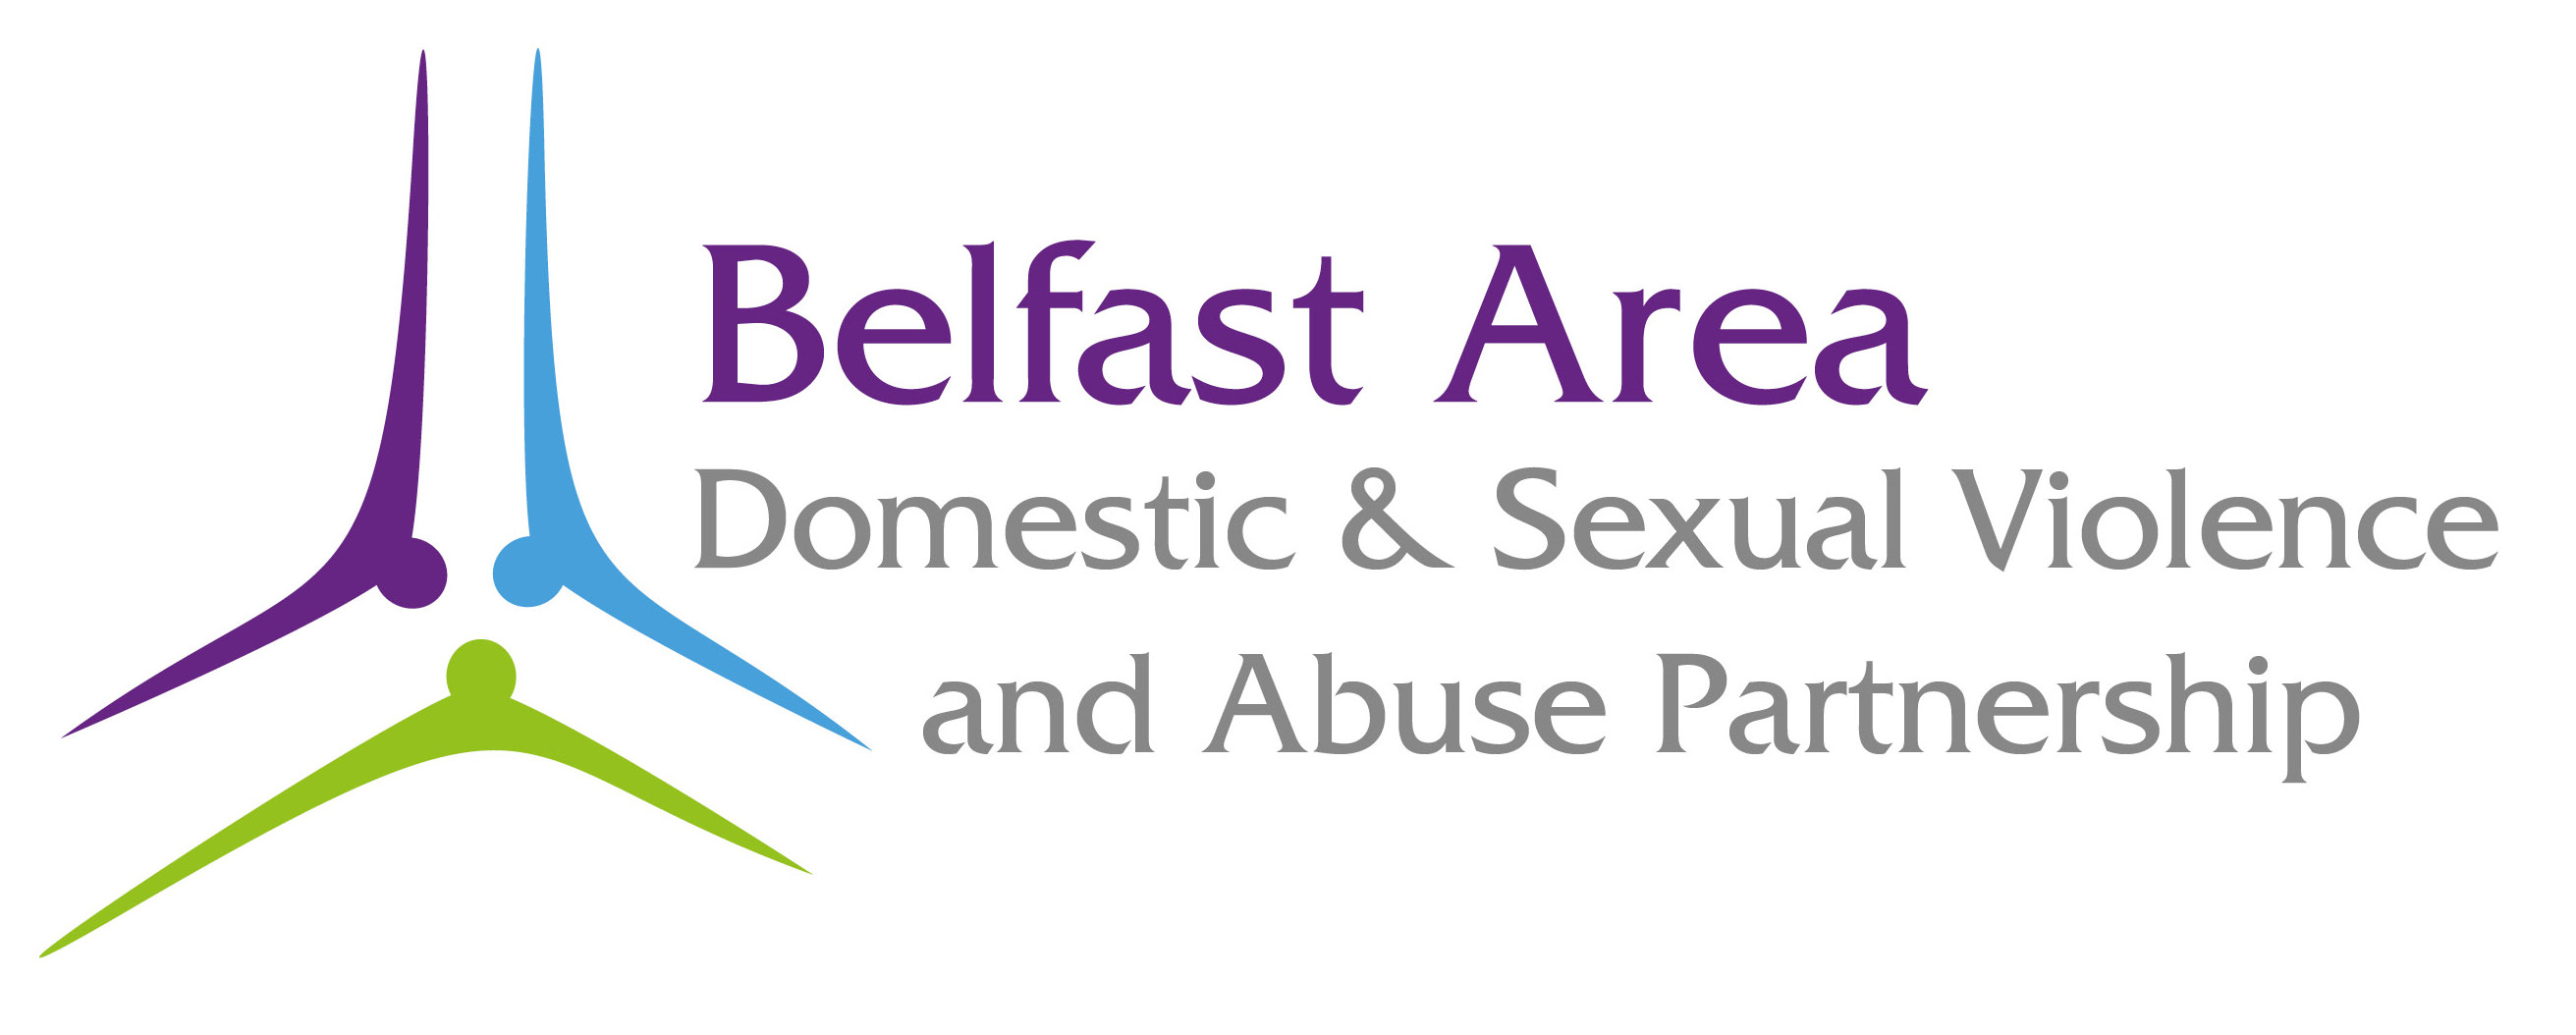 Belfast Area Domestic Violence Partnership